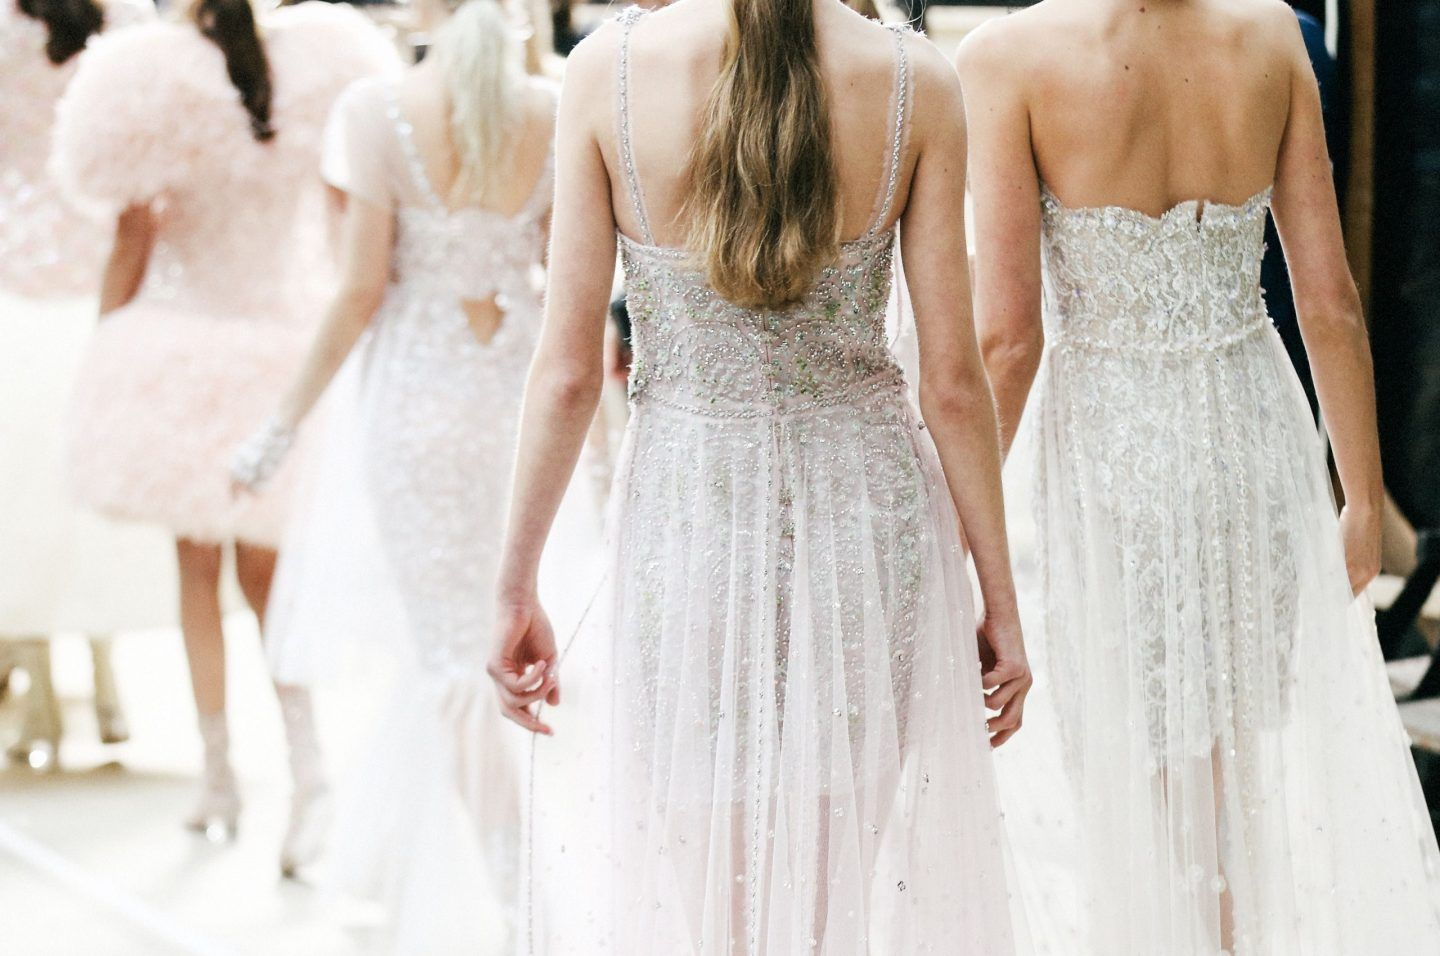 Chanel springsummer haute couture the white files gowns